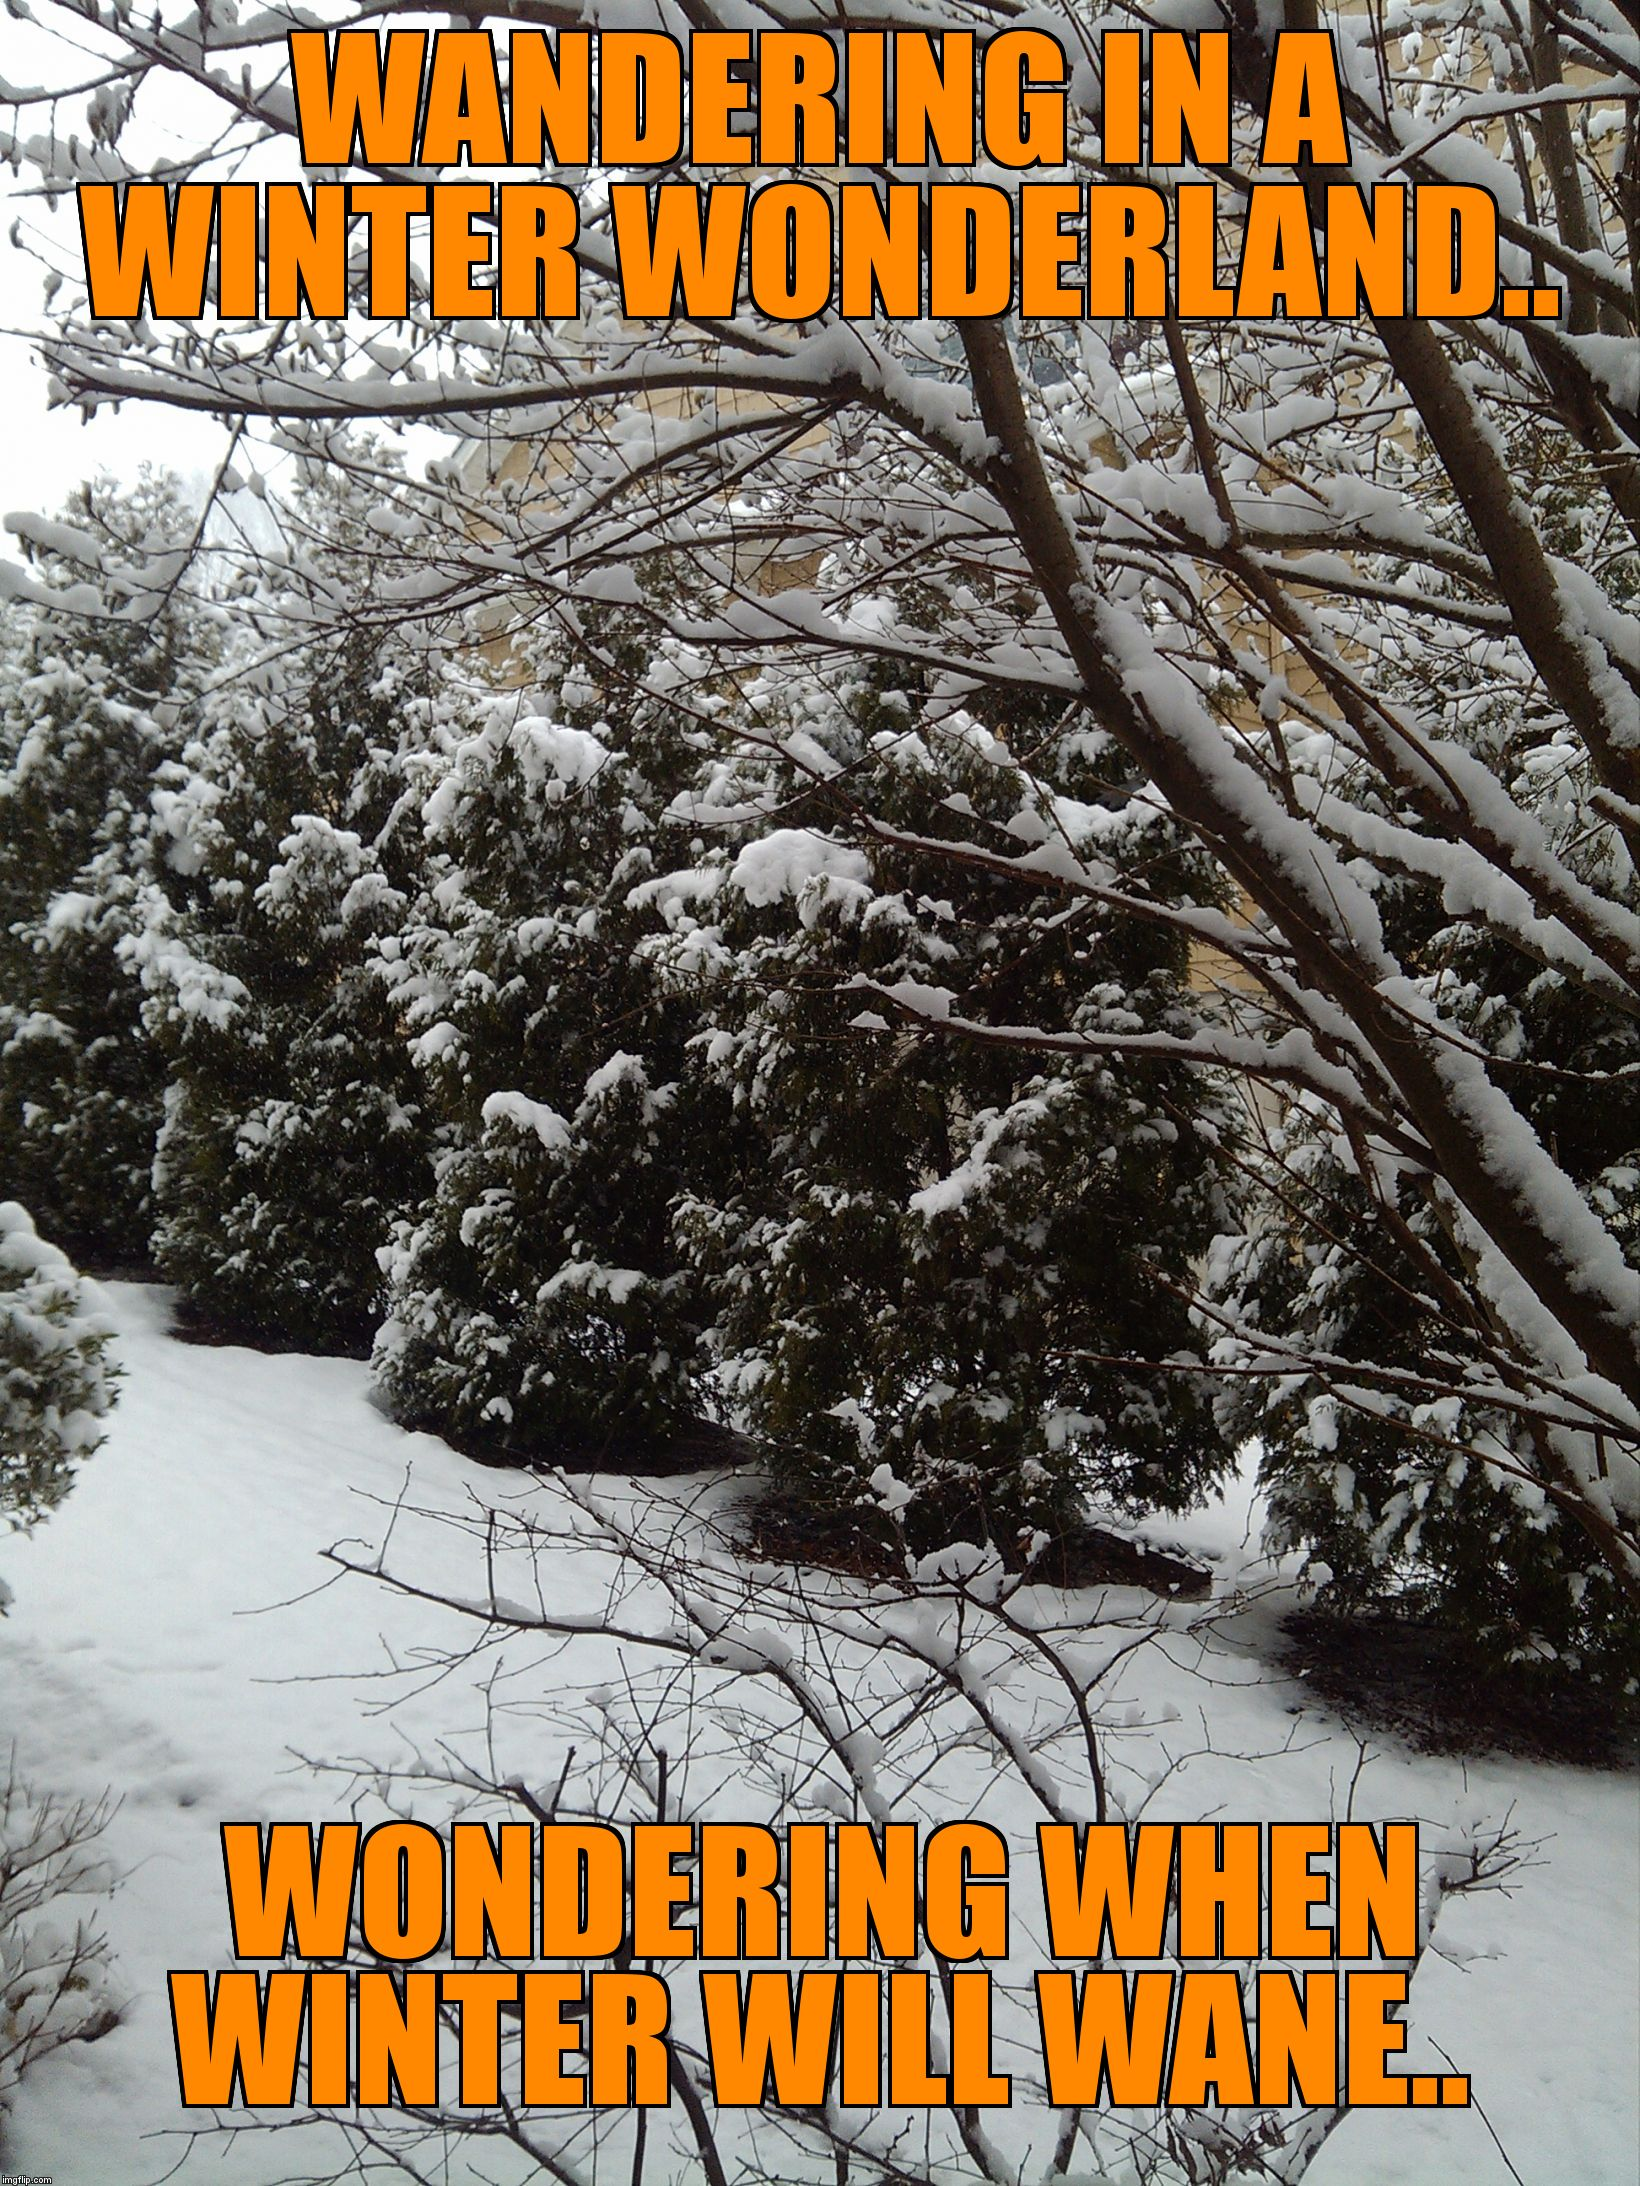 WANDERING IN A WINTER WONDERLAND.. WONDERING WHEN WINTER WILL WANE.. | image tagged in winter wonderland | made w/ Imgflip meme maker